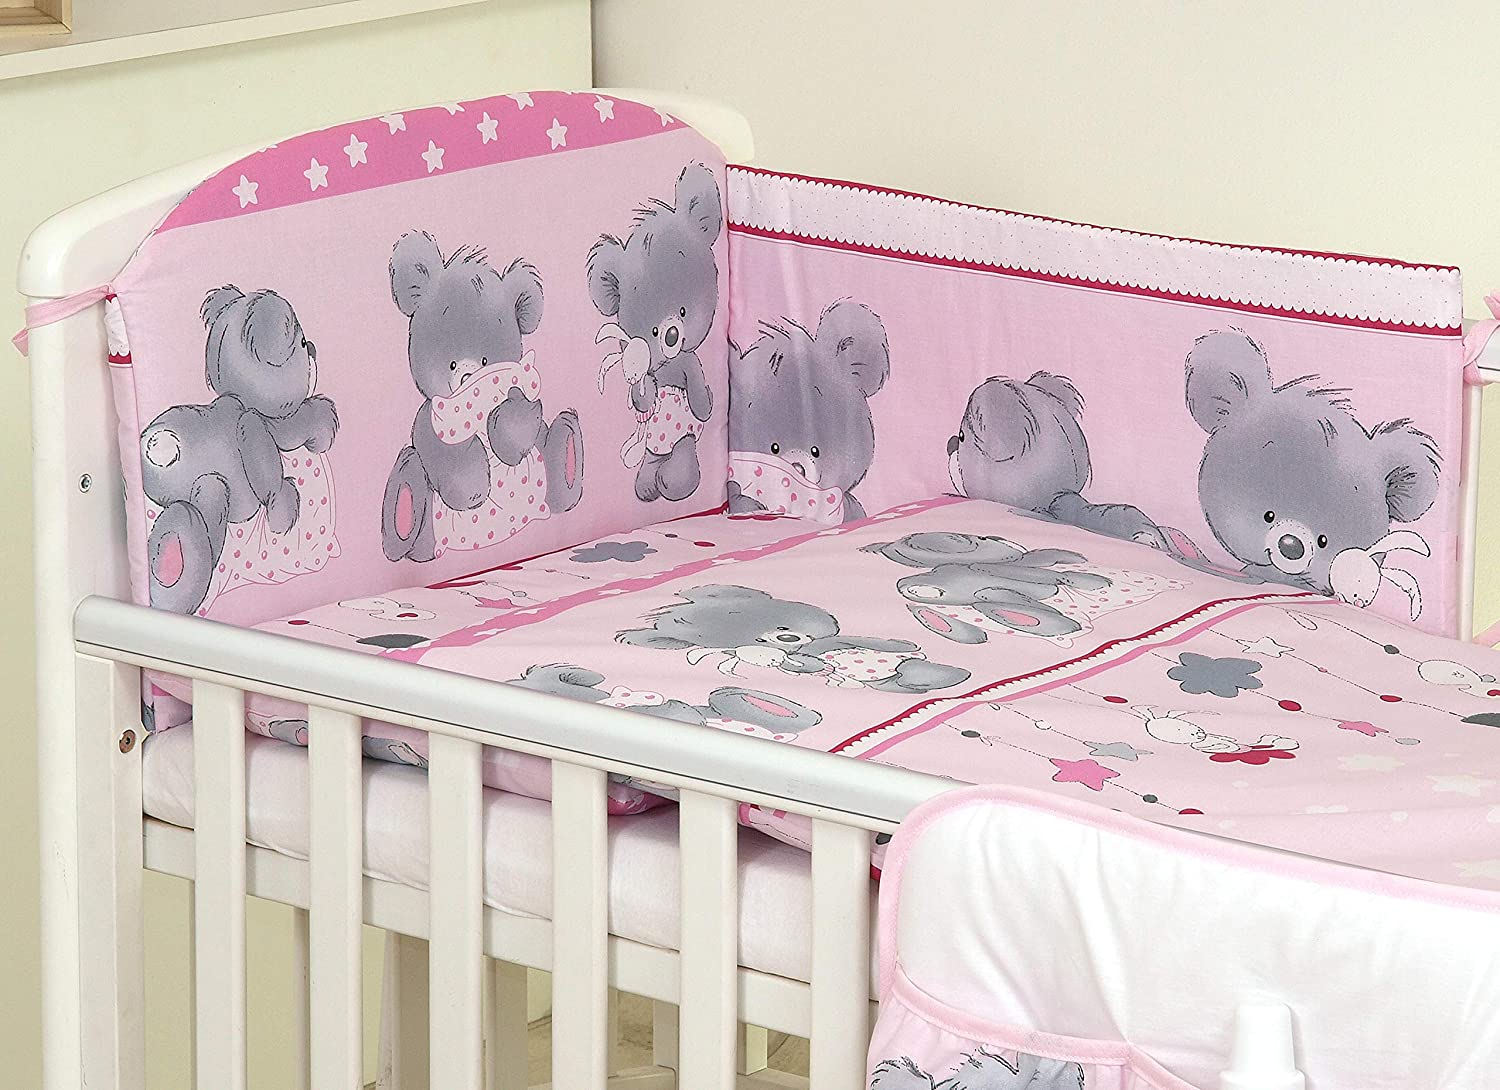 BABY BEDDING SET 120x90 PILLOWCASE DUVET COVER 2PC FIT COT 120x60 MOUSE GREY